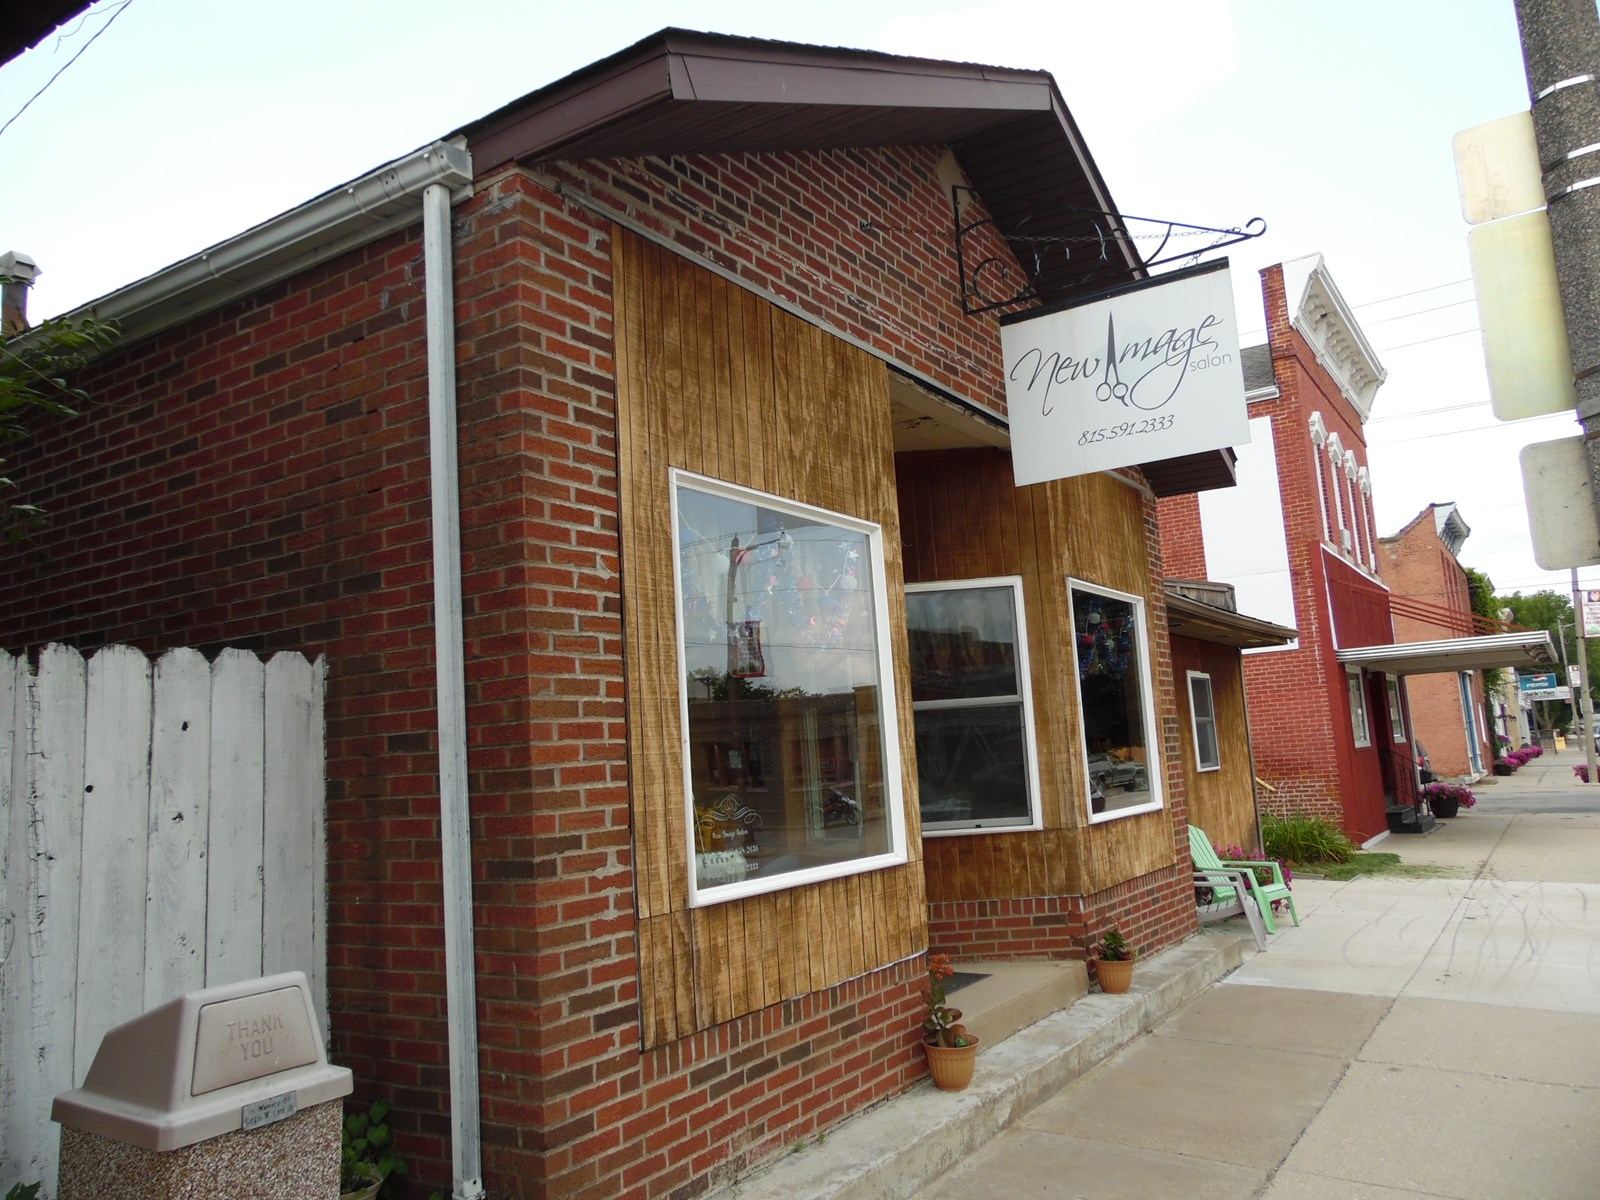 Commercial Building For Sale in Hanover, IL